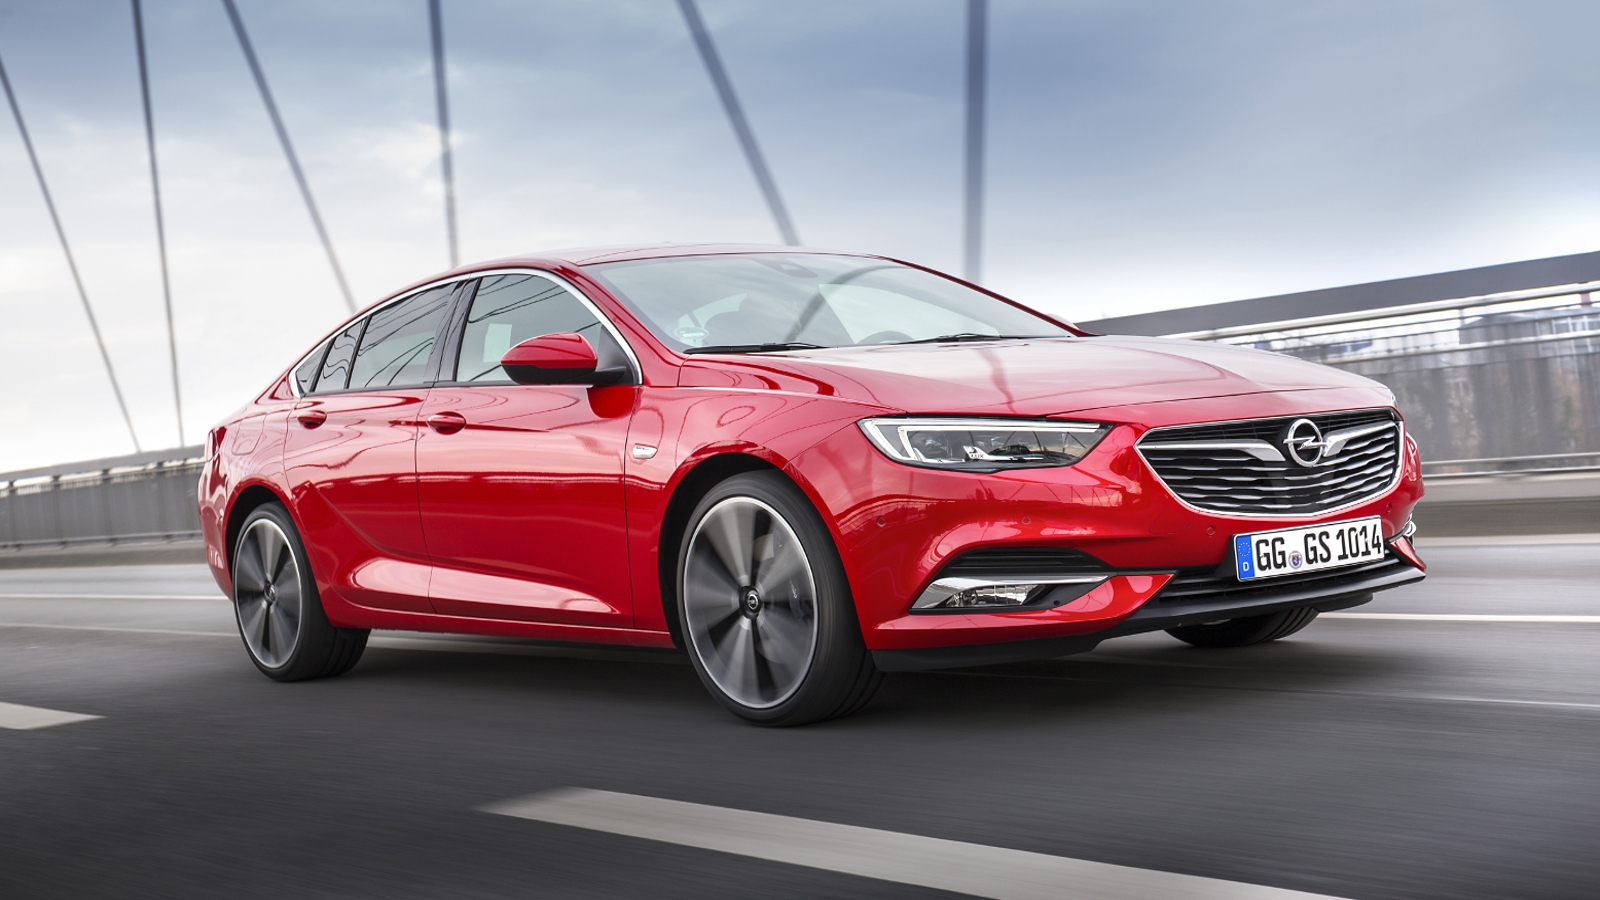 Hundreds of Opel Insignia cars recalled over fire risk